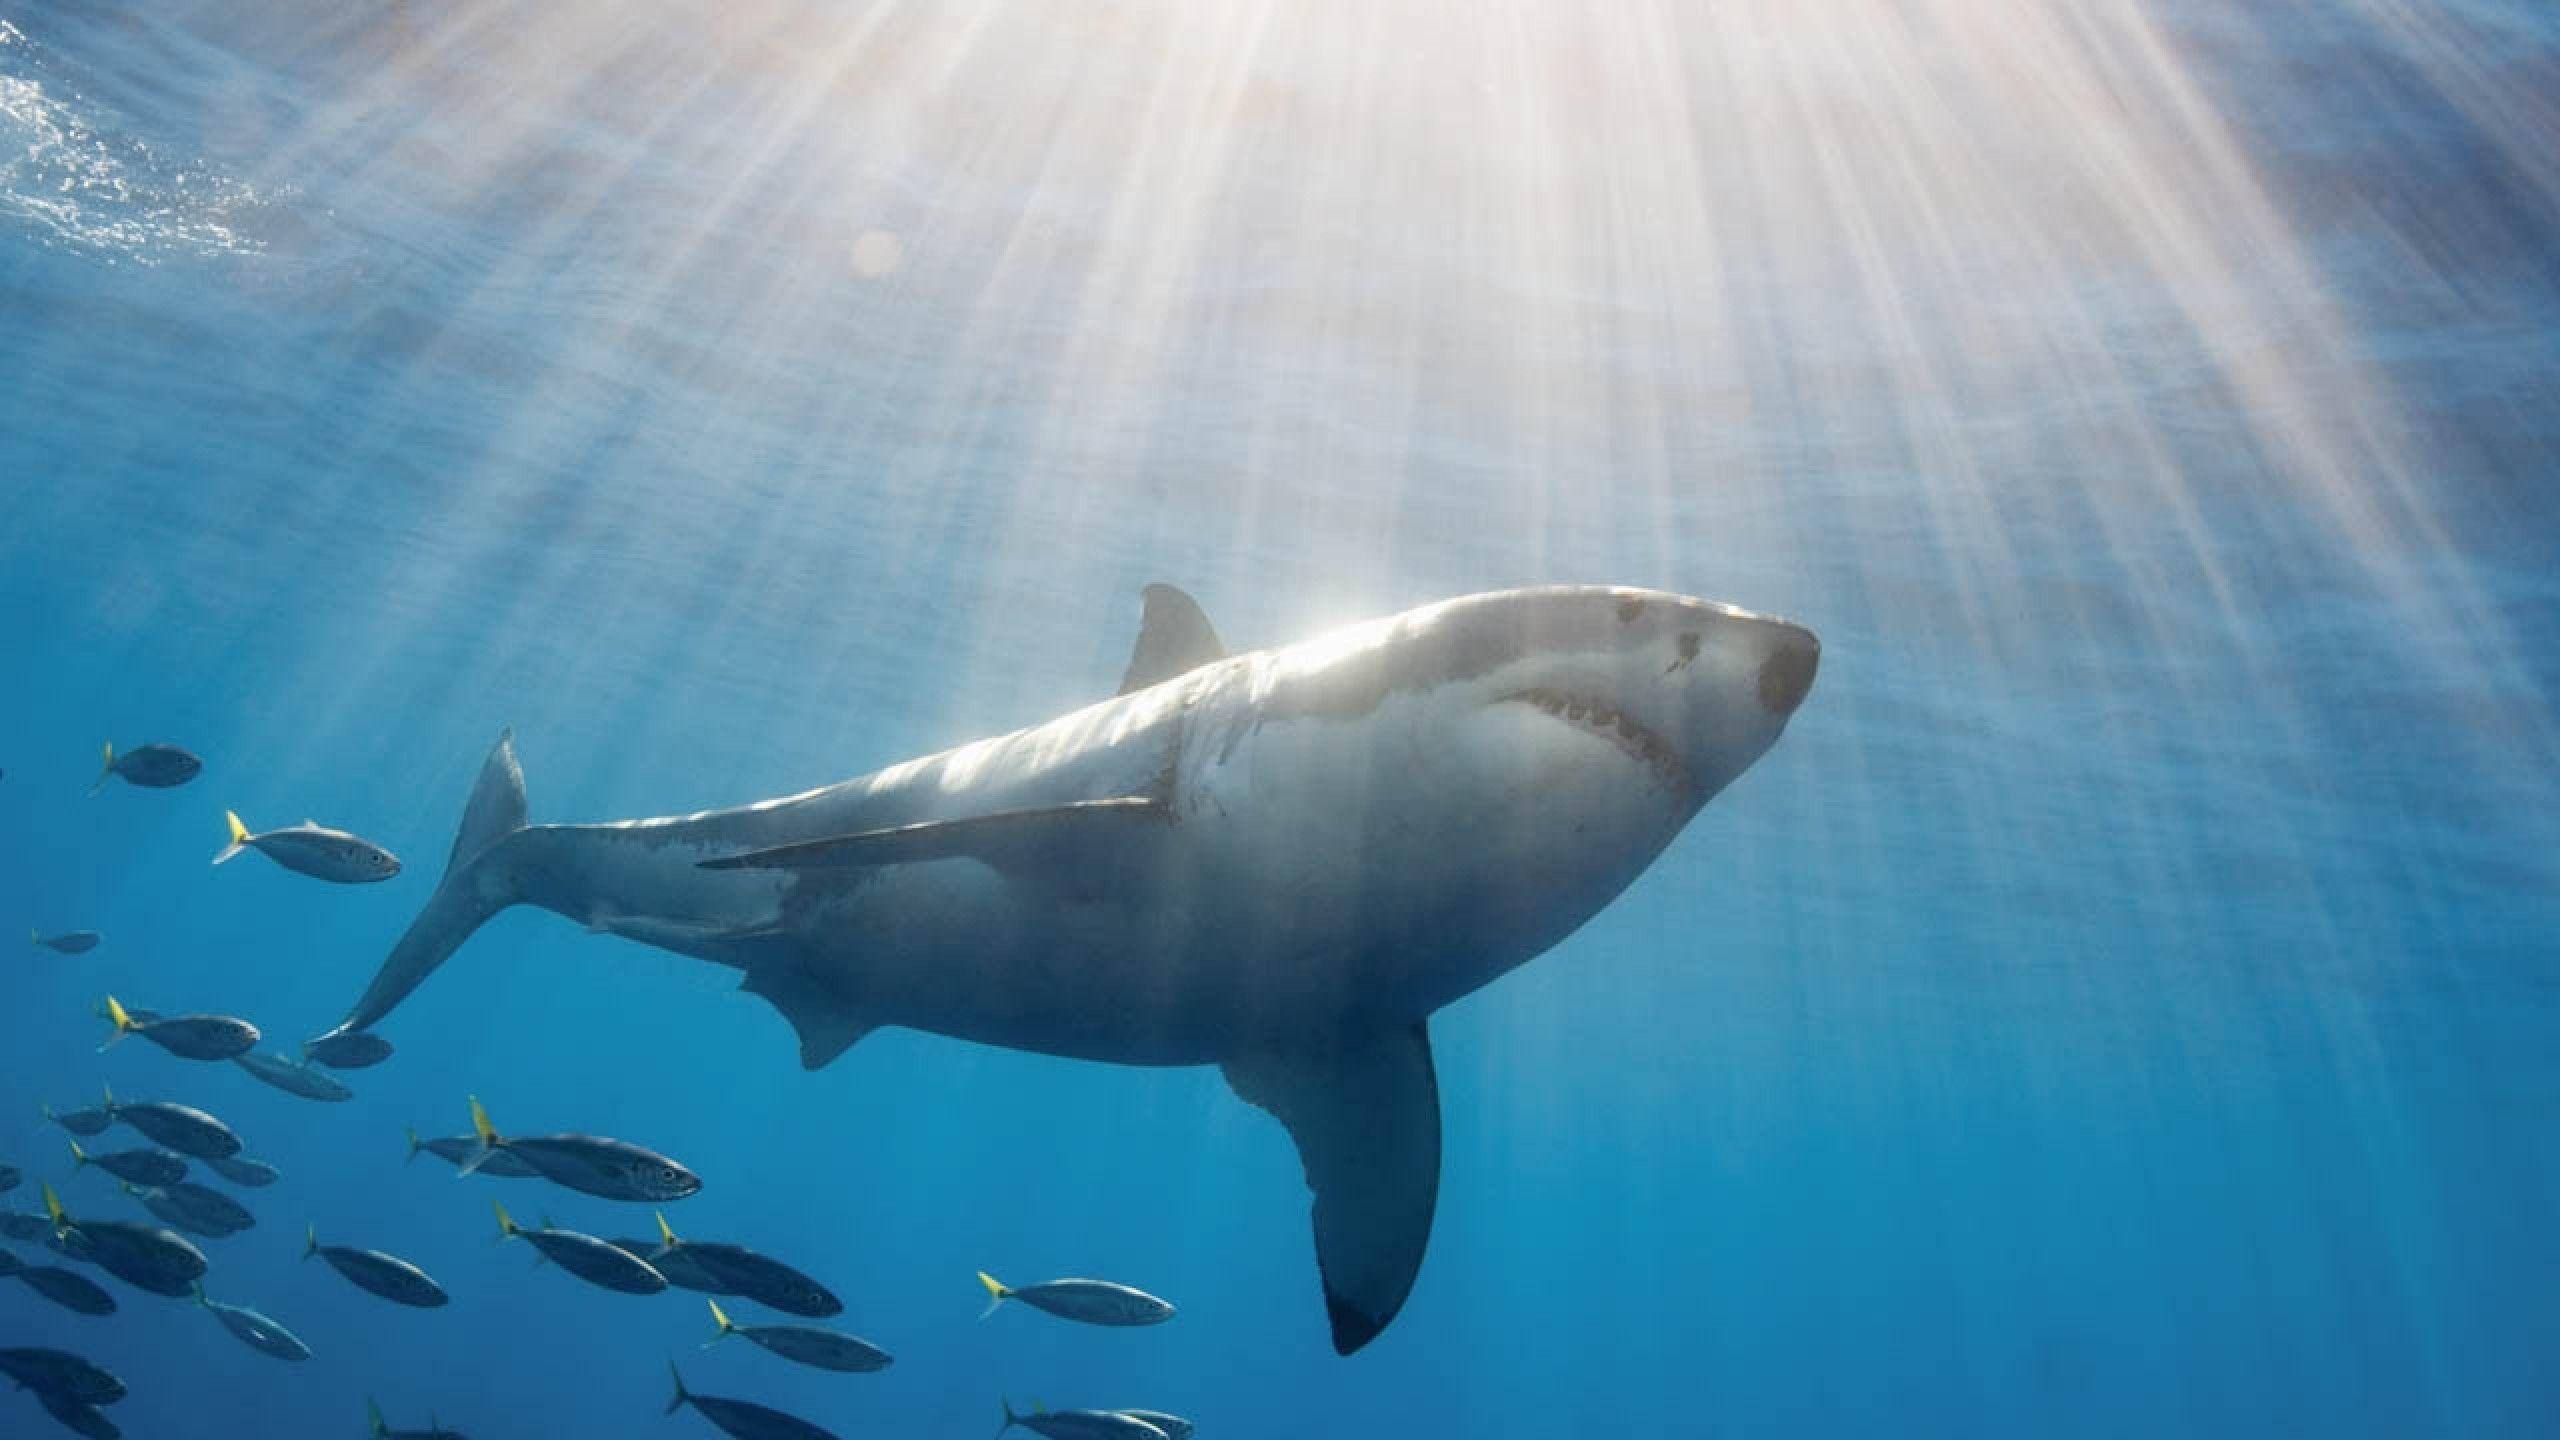 Hd Great White Shark Wallpaper Great White Shark Wallpapers Wallpaper Cave